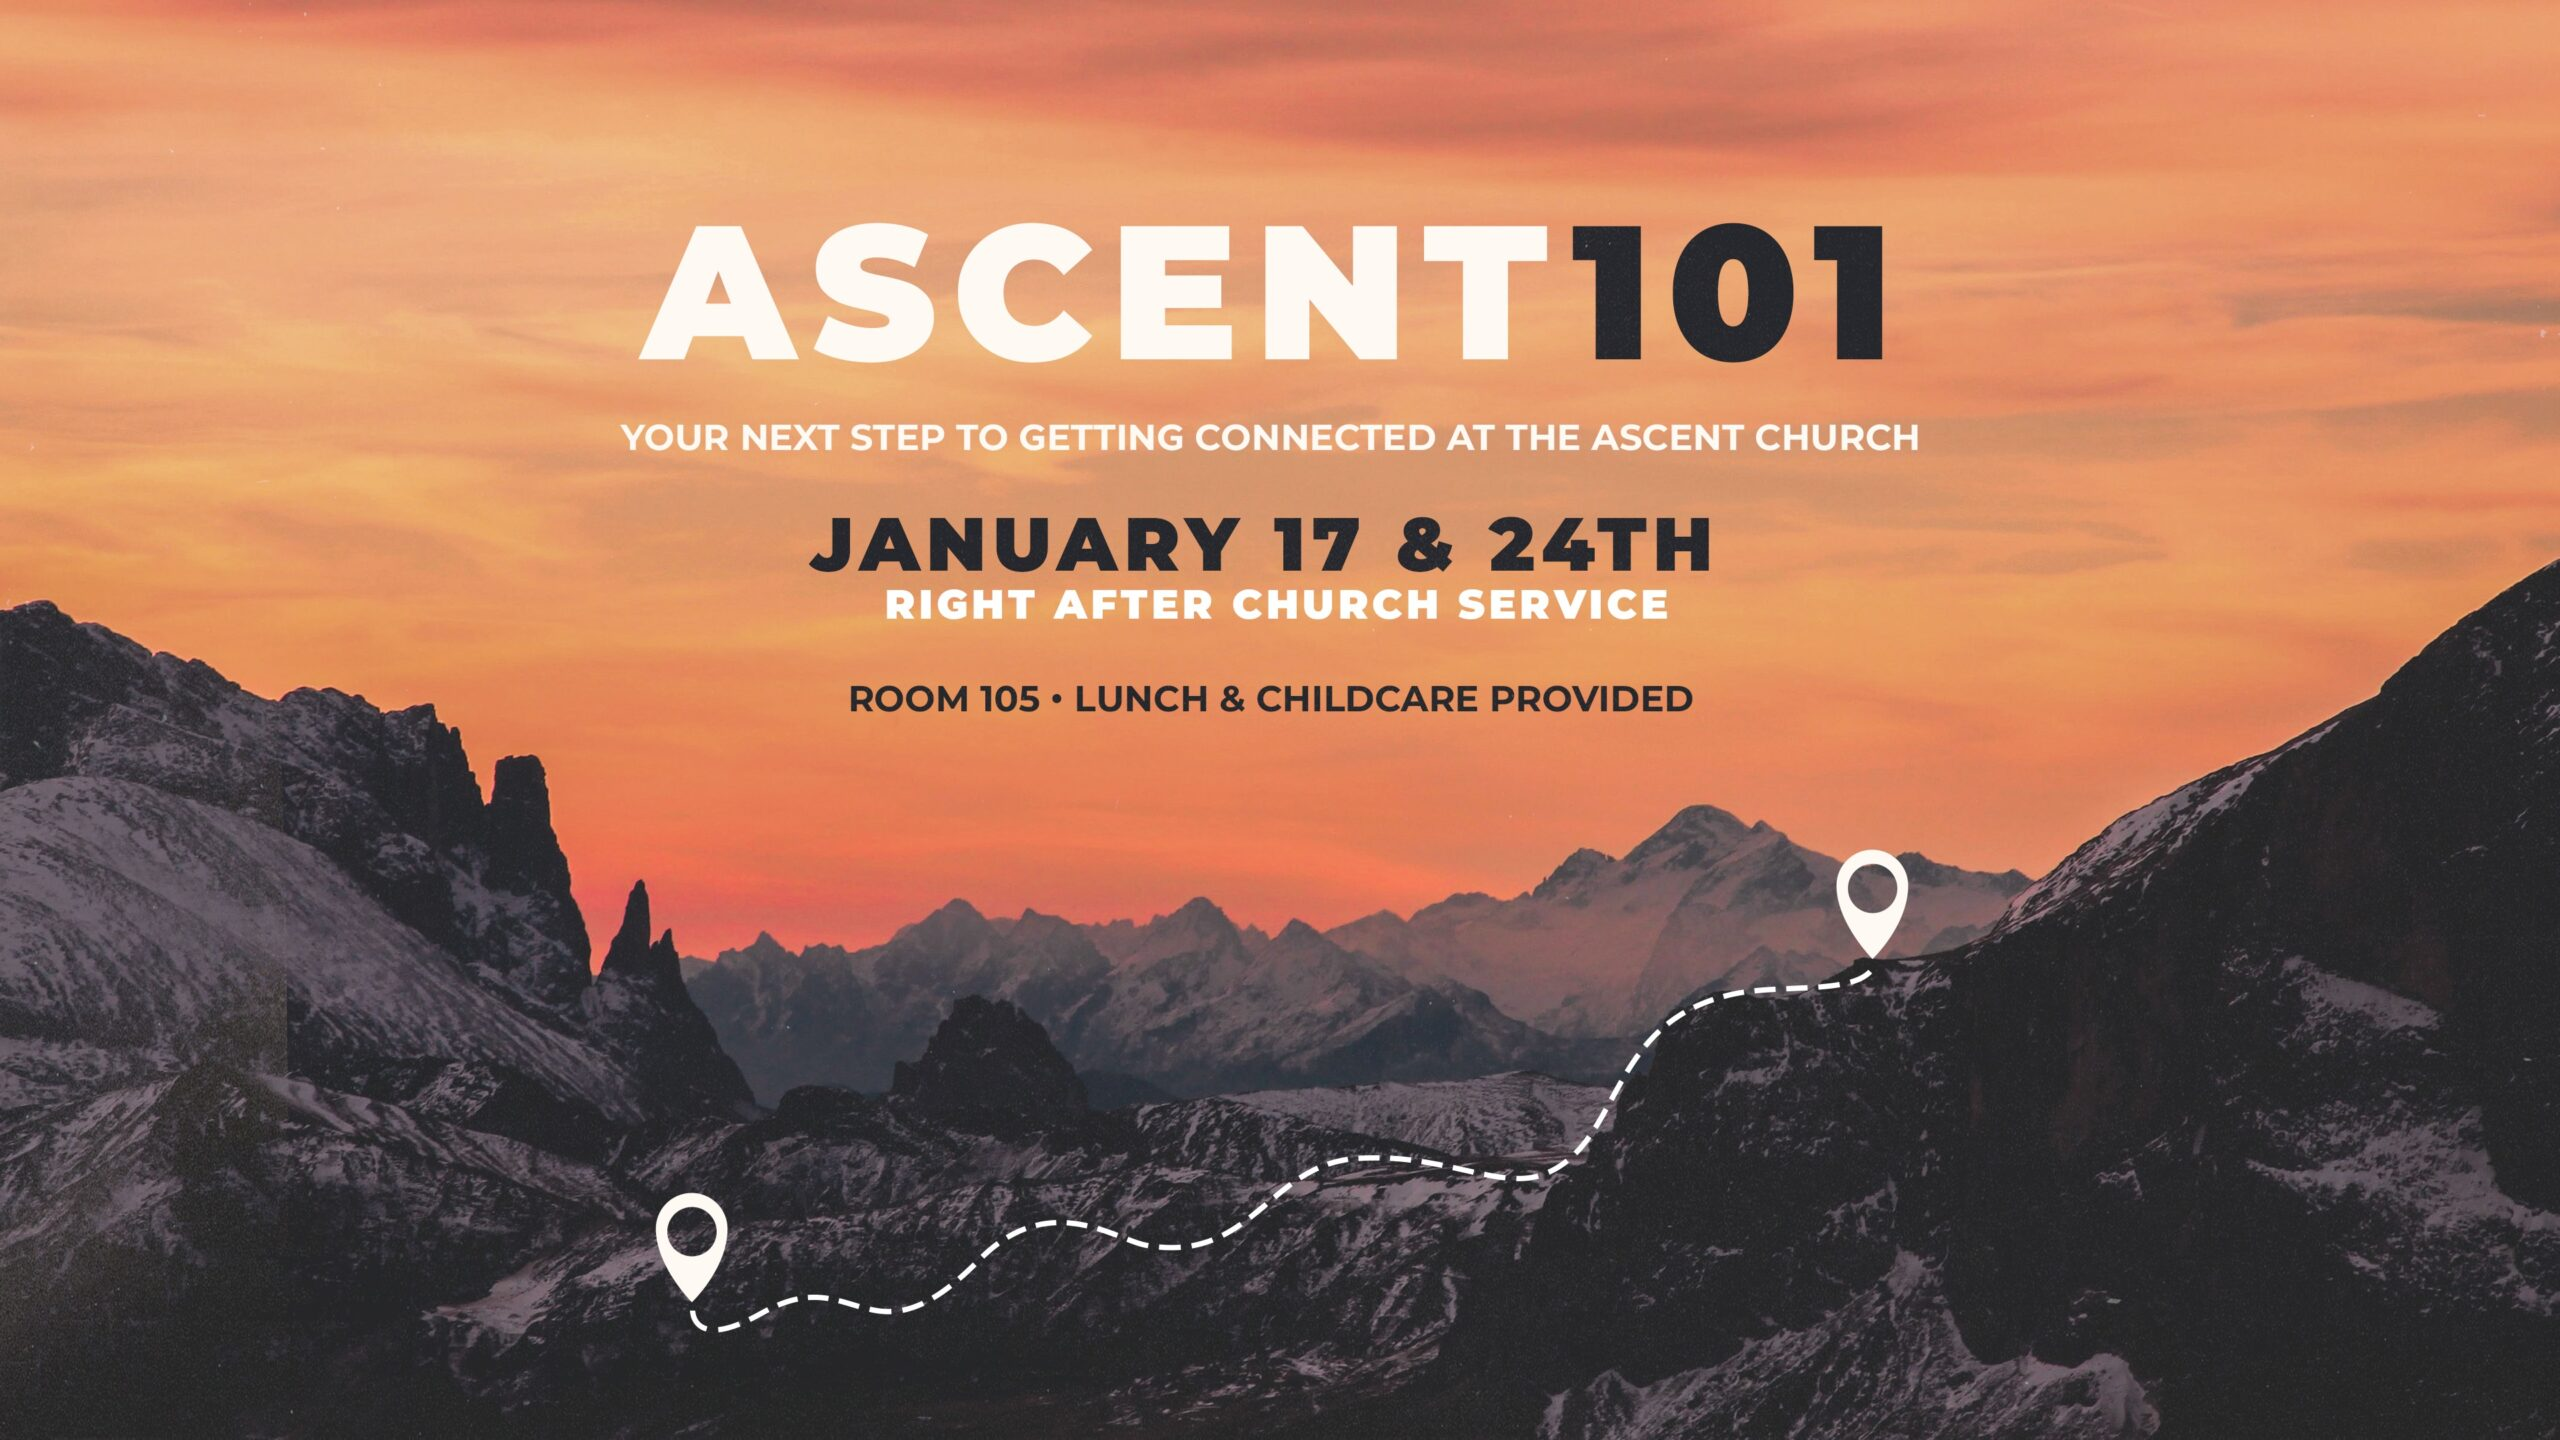 Register for Ascent101 by clicking on this graphic